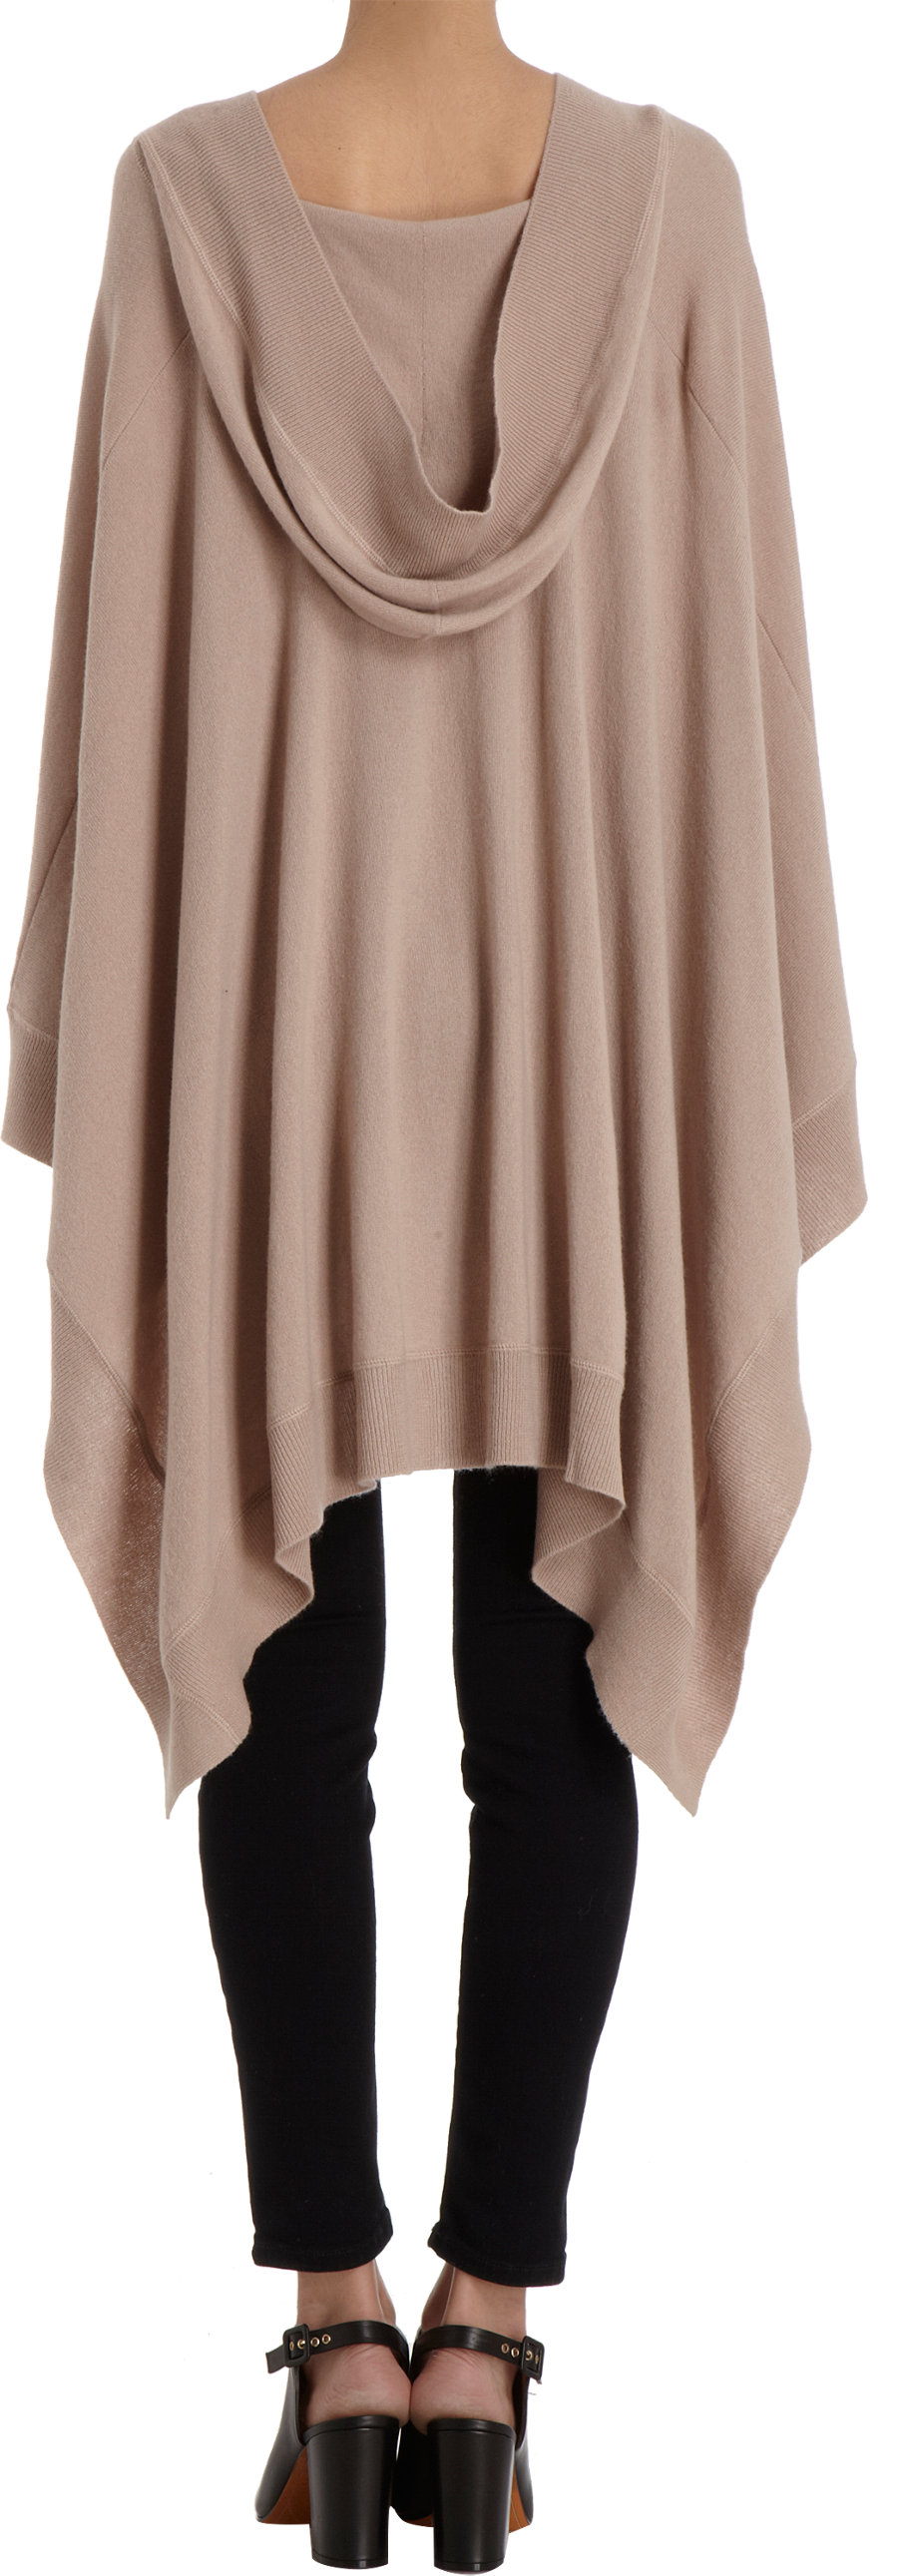 Tomas Maier Hooded Poncho Sweater In Brown Lyst